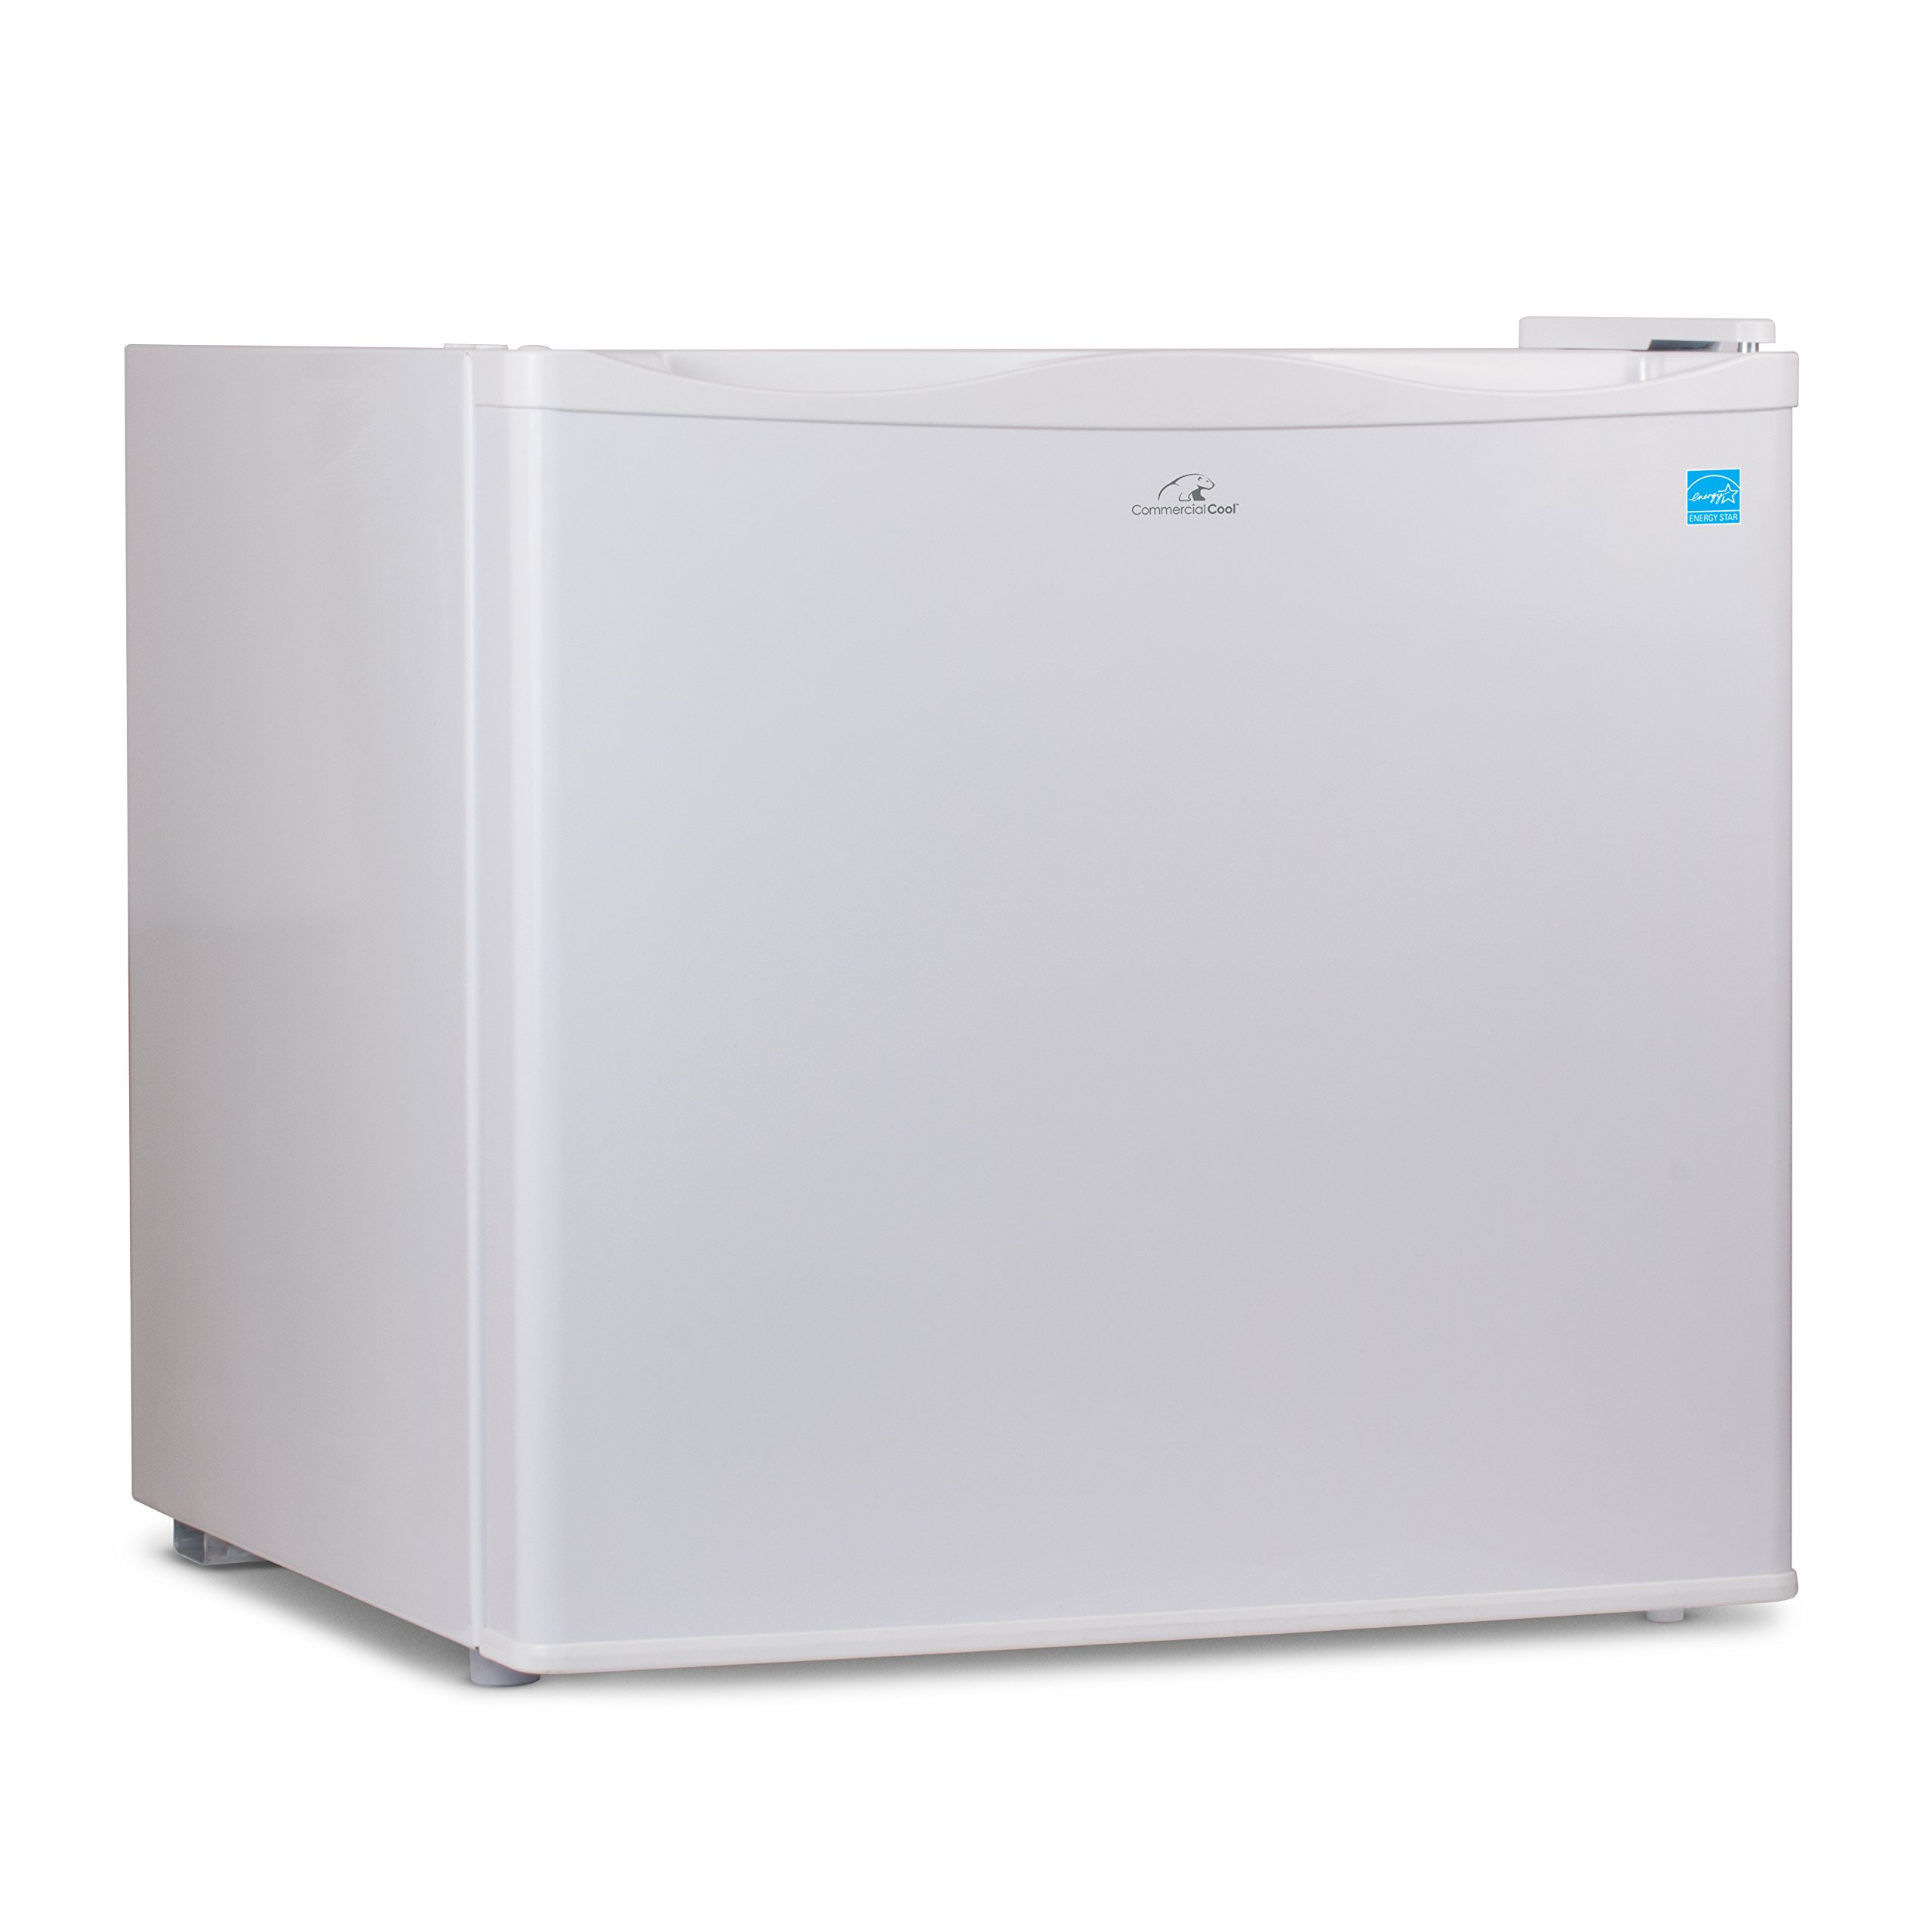 Commercial Cool CCUK12W 1.2 Cu. Ft. Upright Freezer with Adjustable Thermostat Control and R600a Refrigerant, White by Commercial Cool (Image #7)